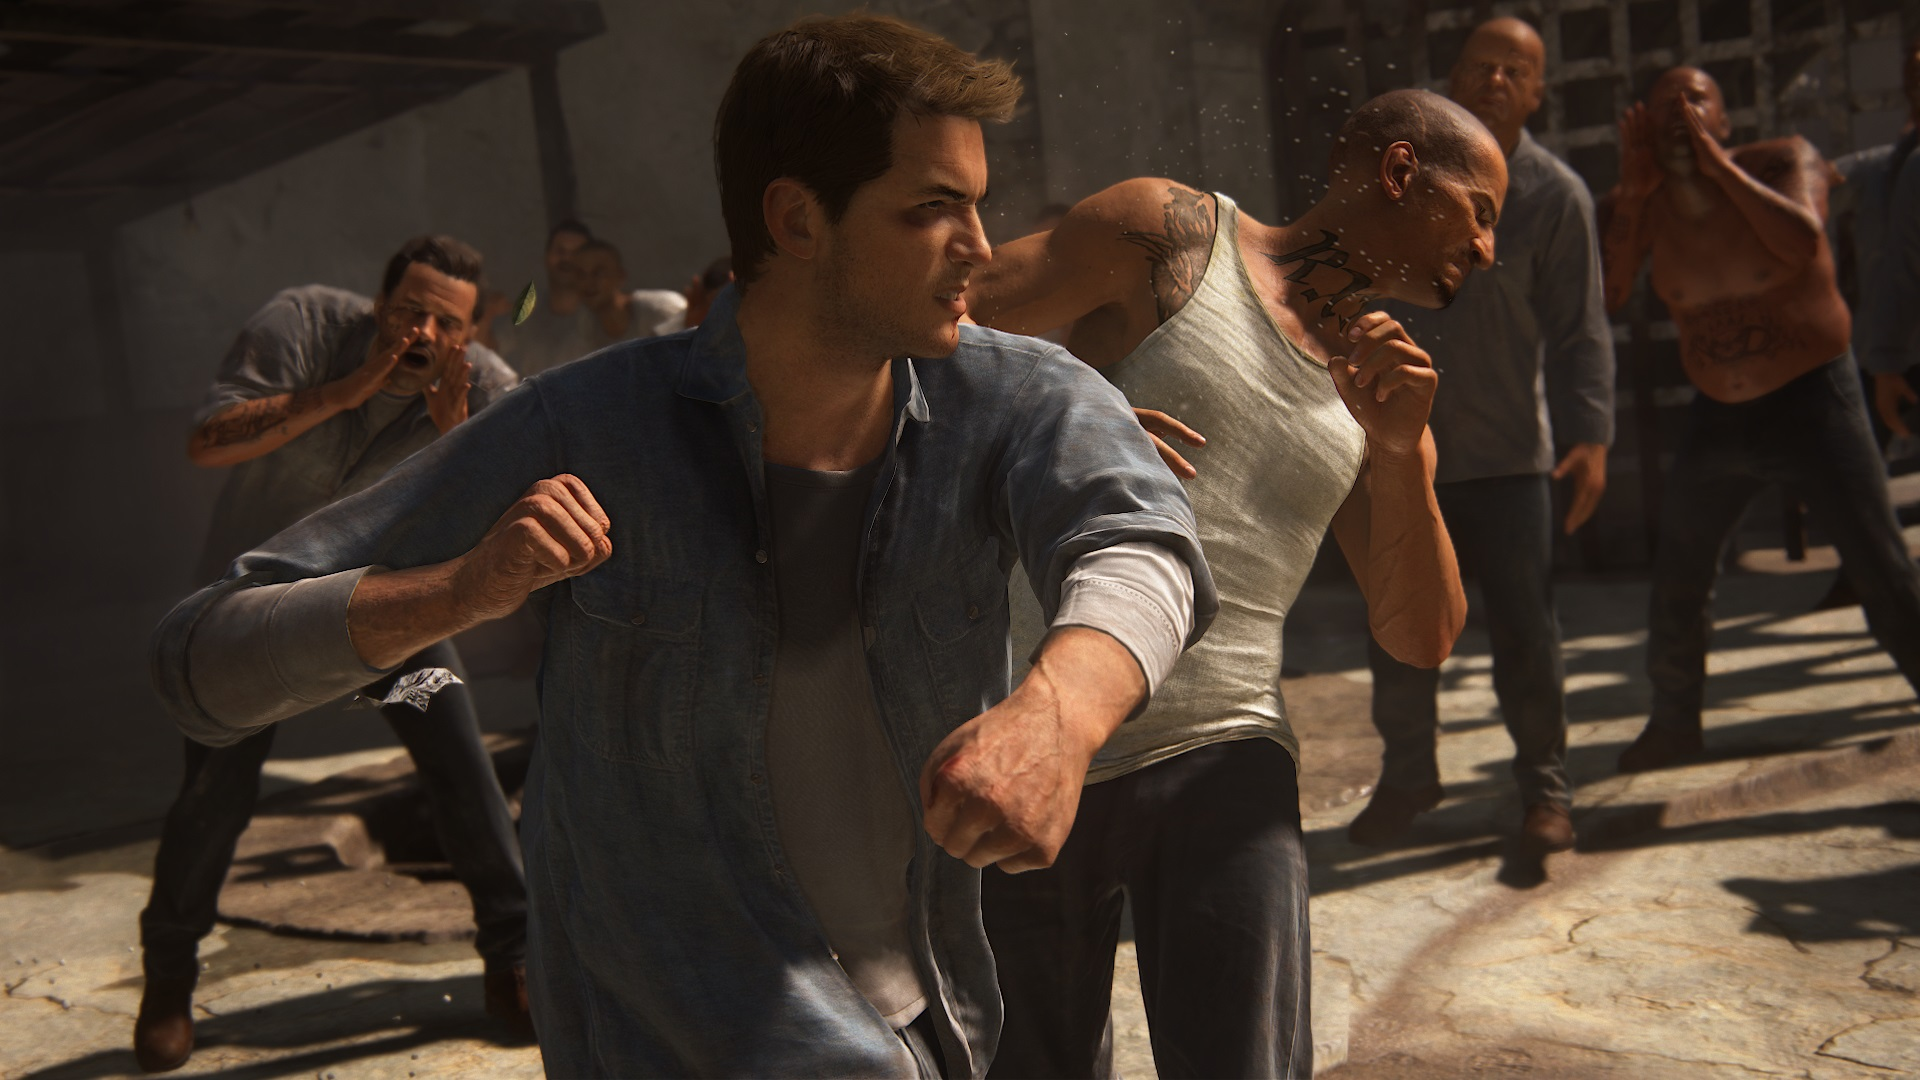 Аренда Uncharted 4 Путь вора на PlayStation 4